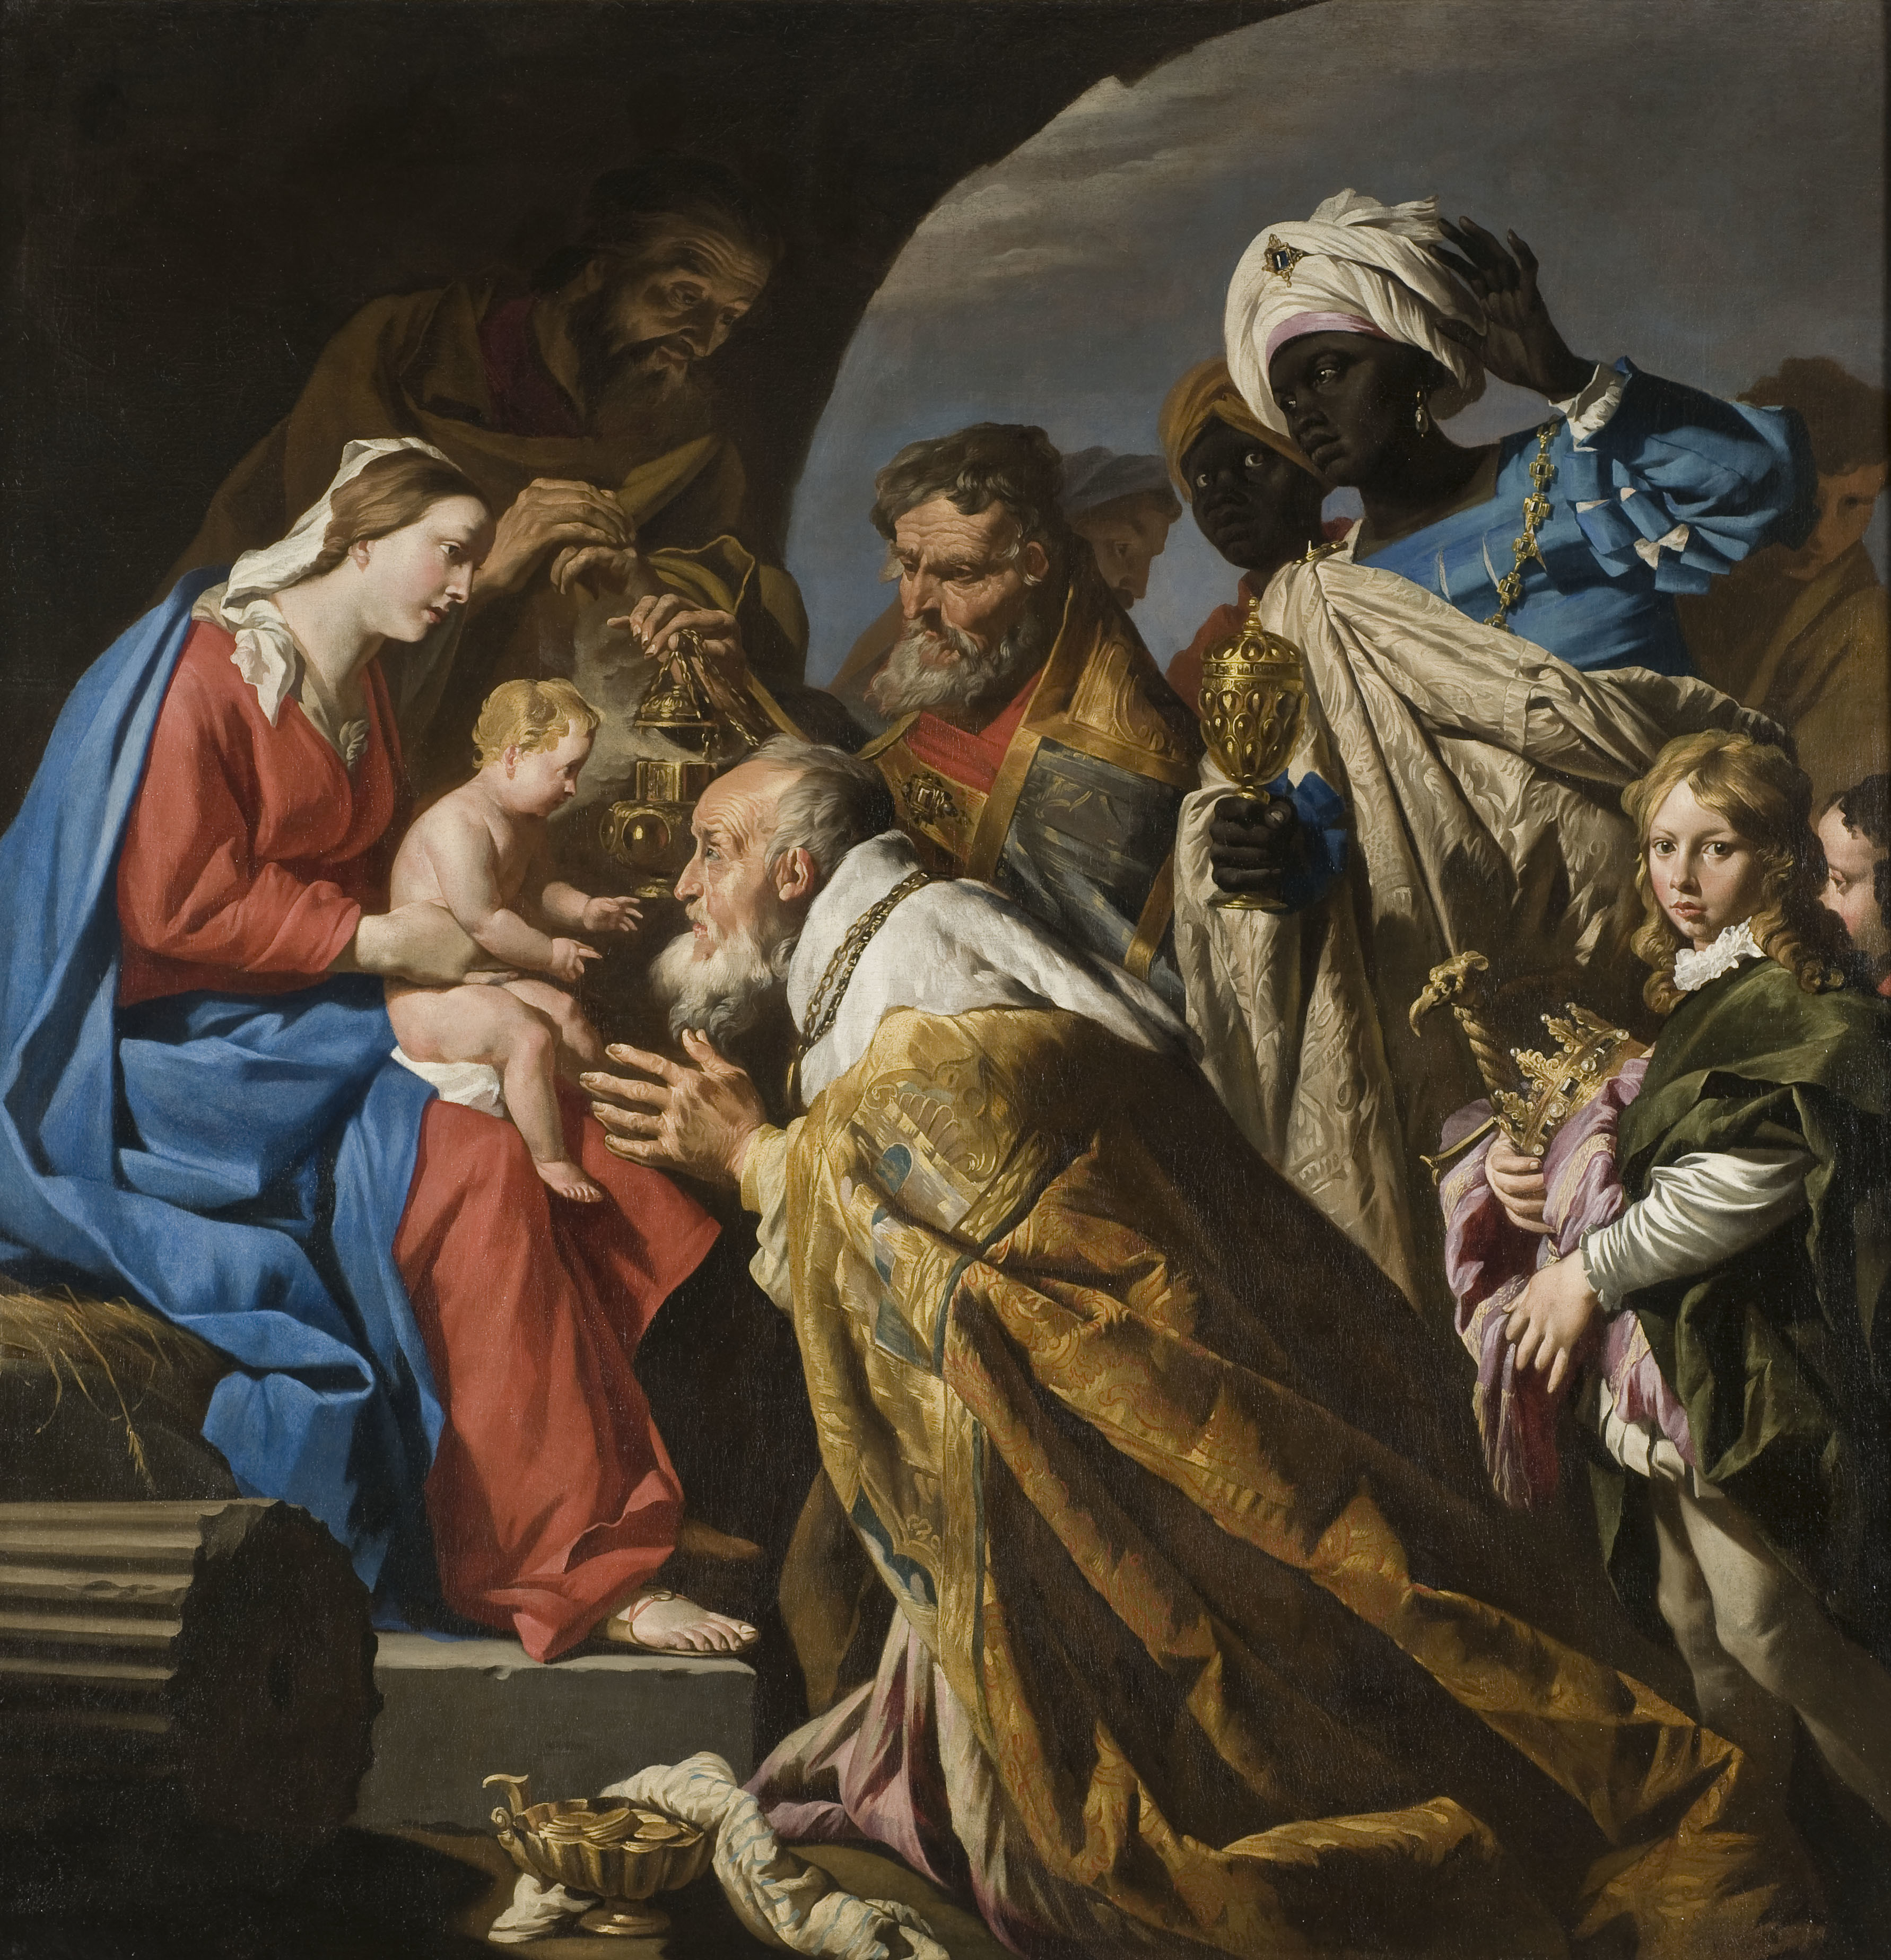 Matthias_stom_the_adoration_of_the_magi